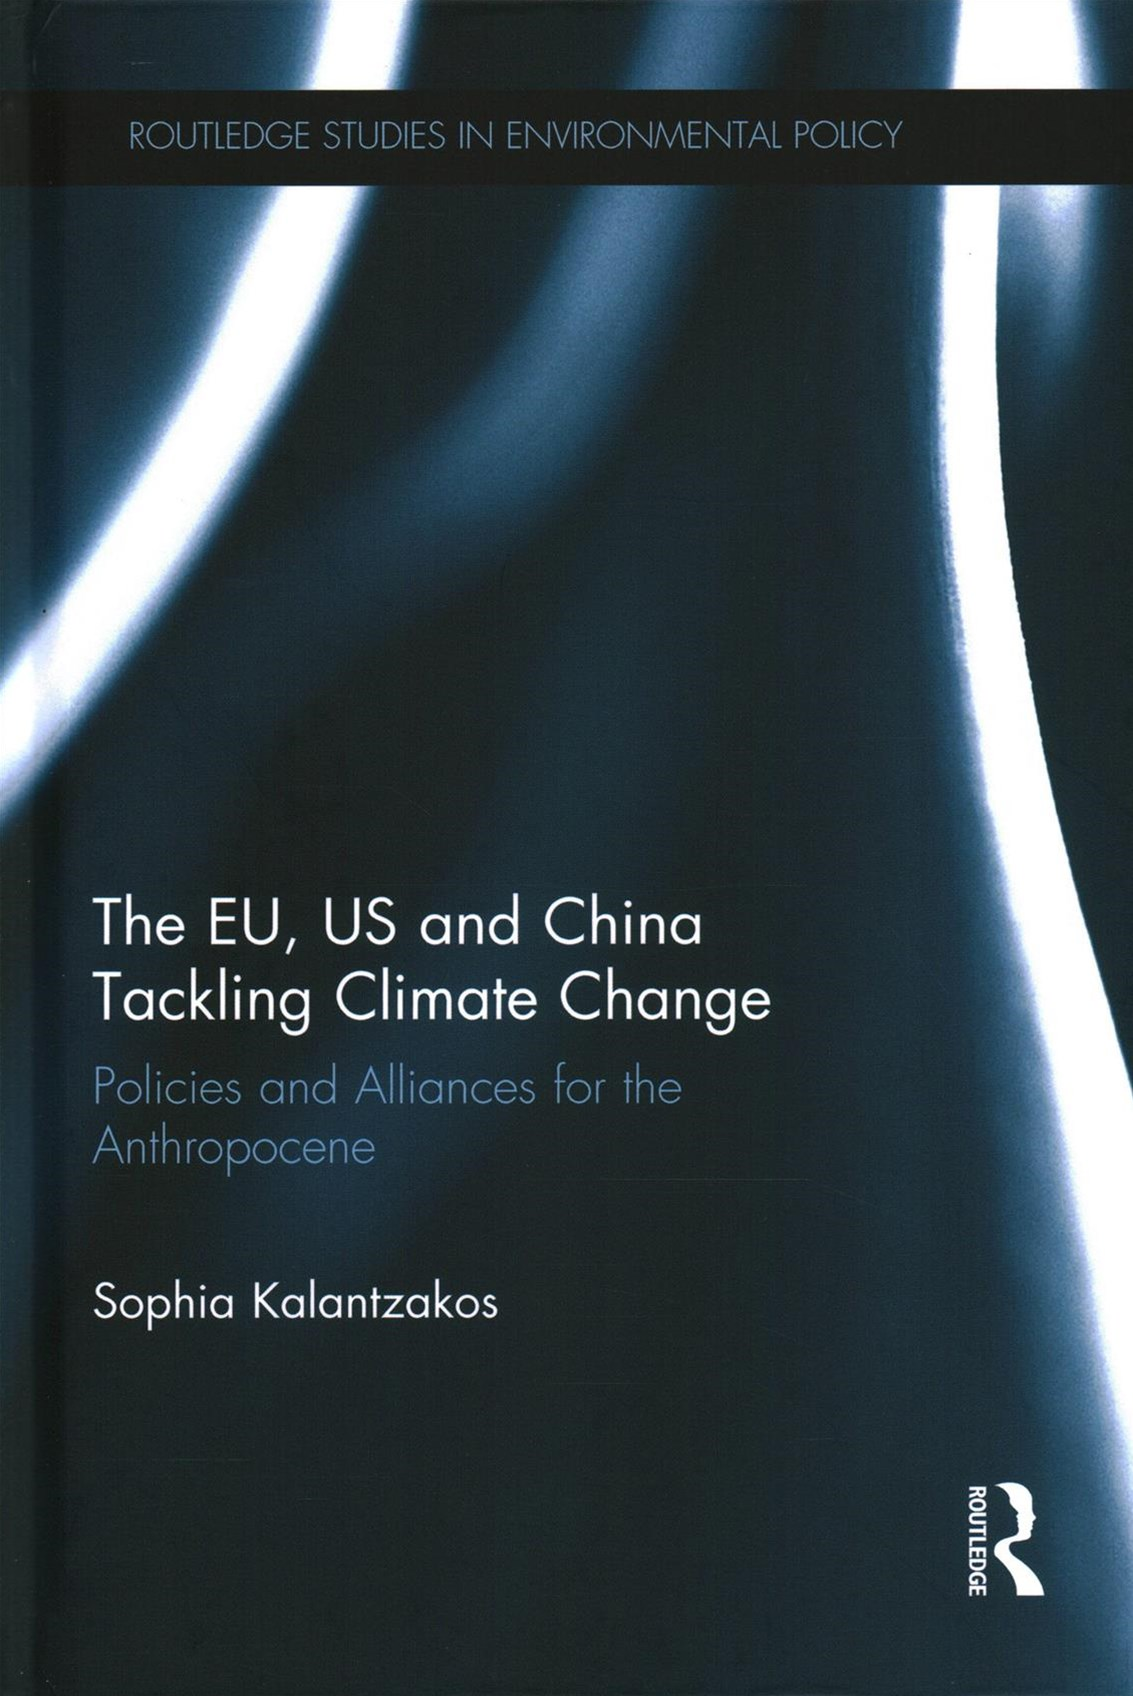 EU, US and China Tackling Climate Change